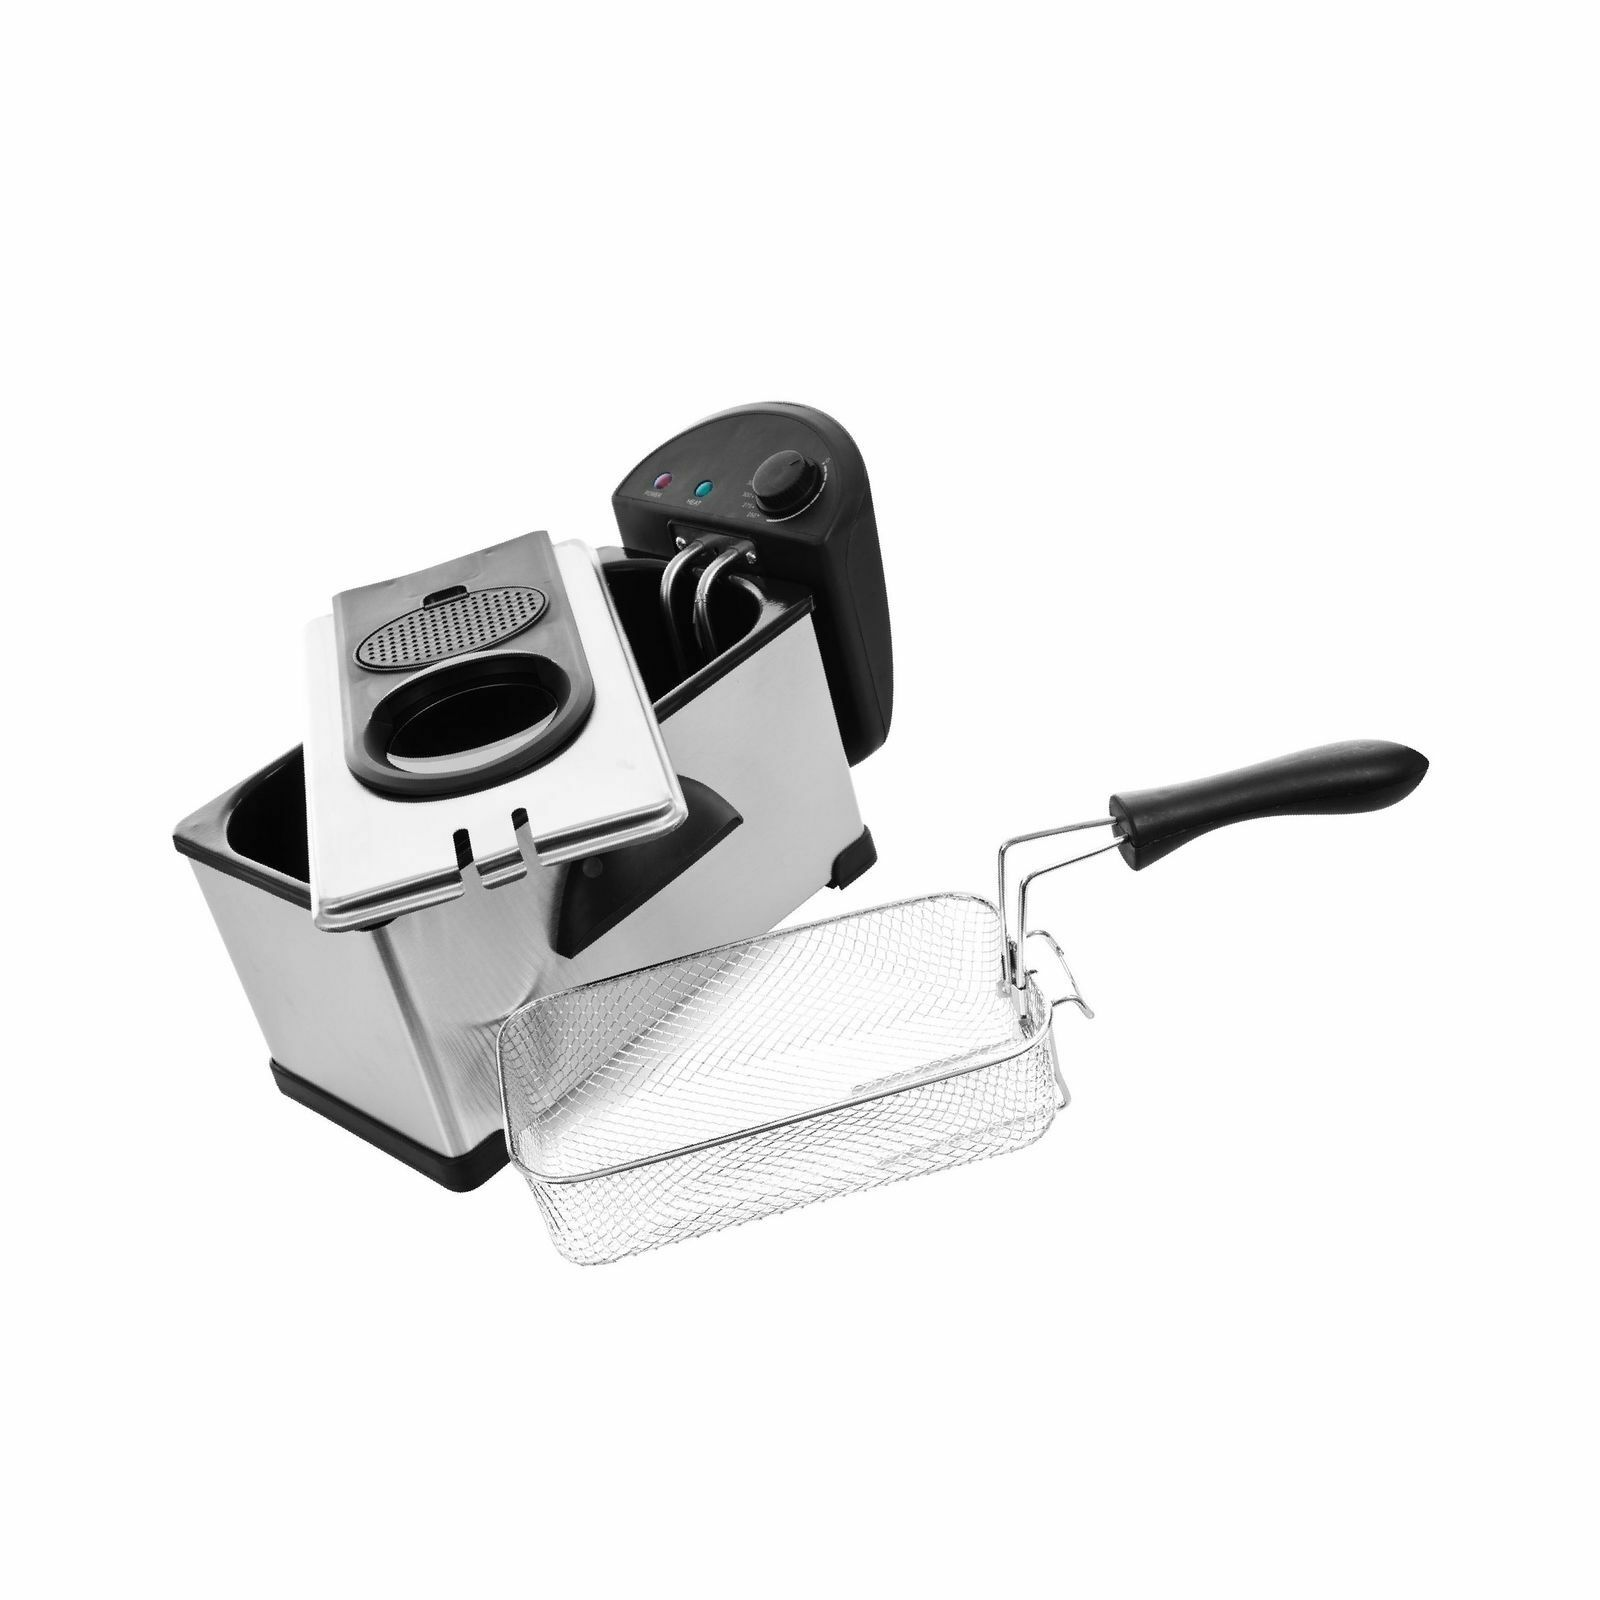 New SIGNATURE CLASSICS Stainless Steel 3.2 Qt. Electric Deep Fryer